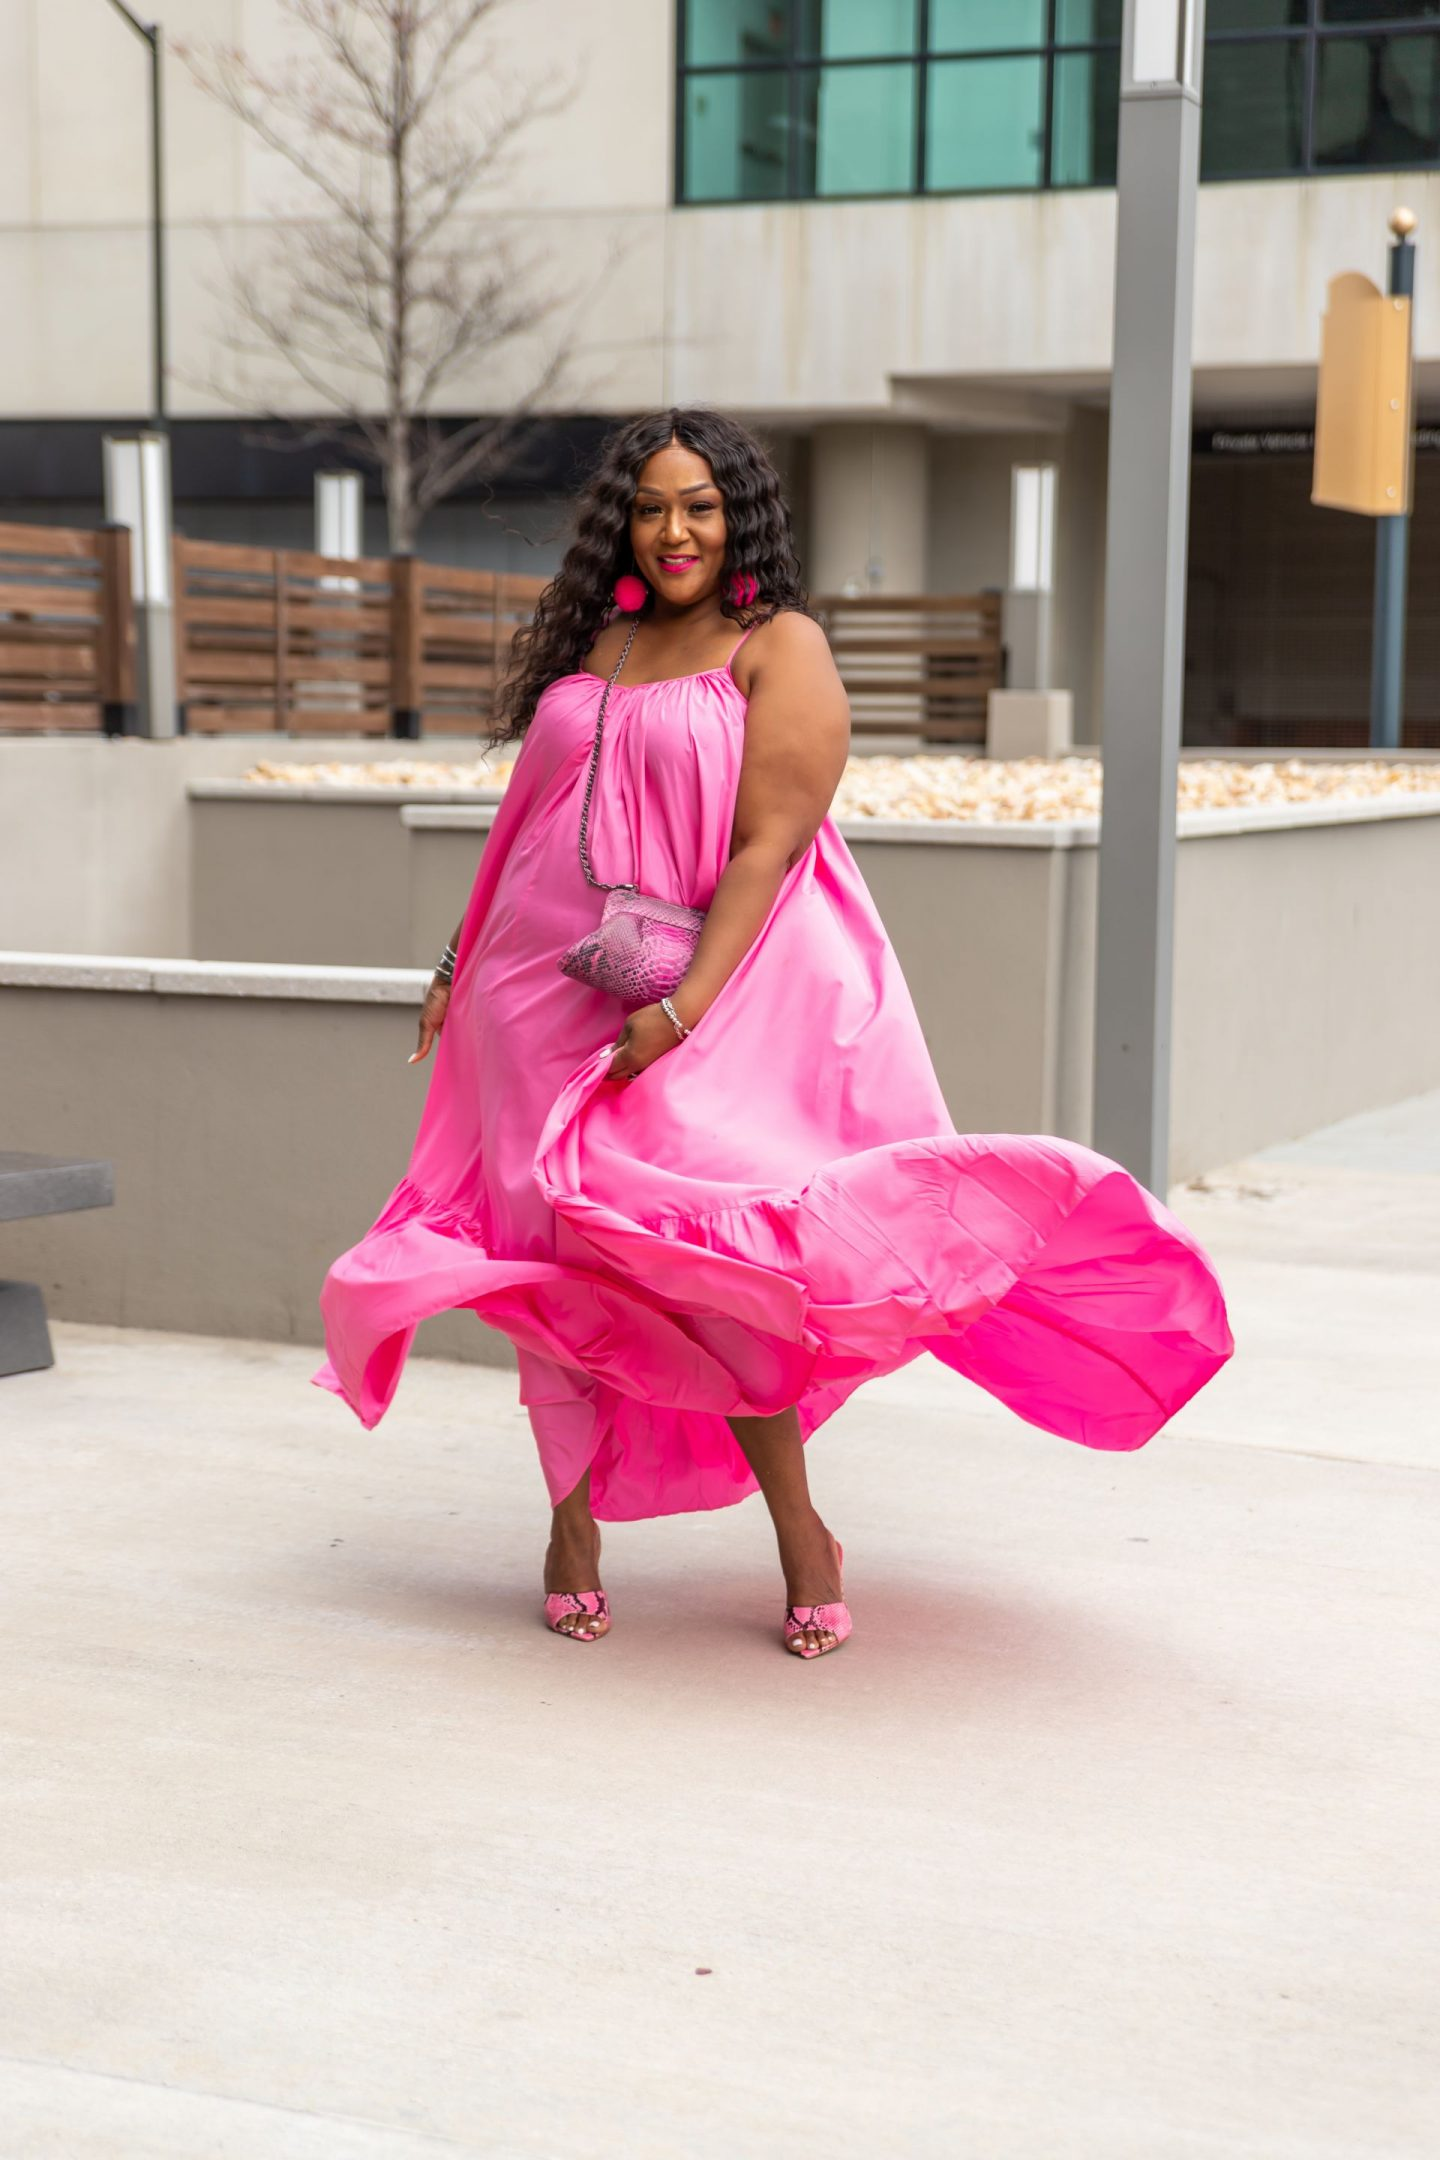 Blogger Nikki Free twirling in flowing pink dress